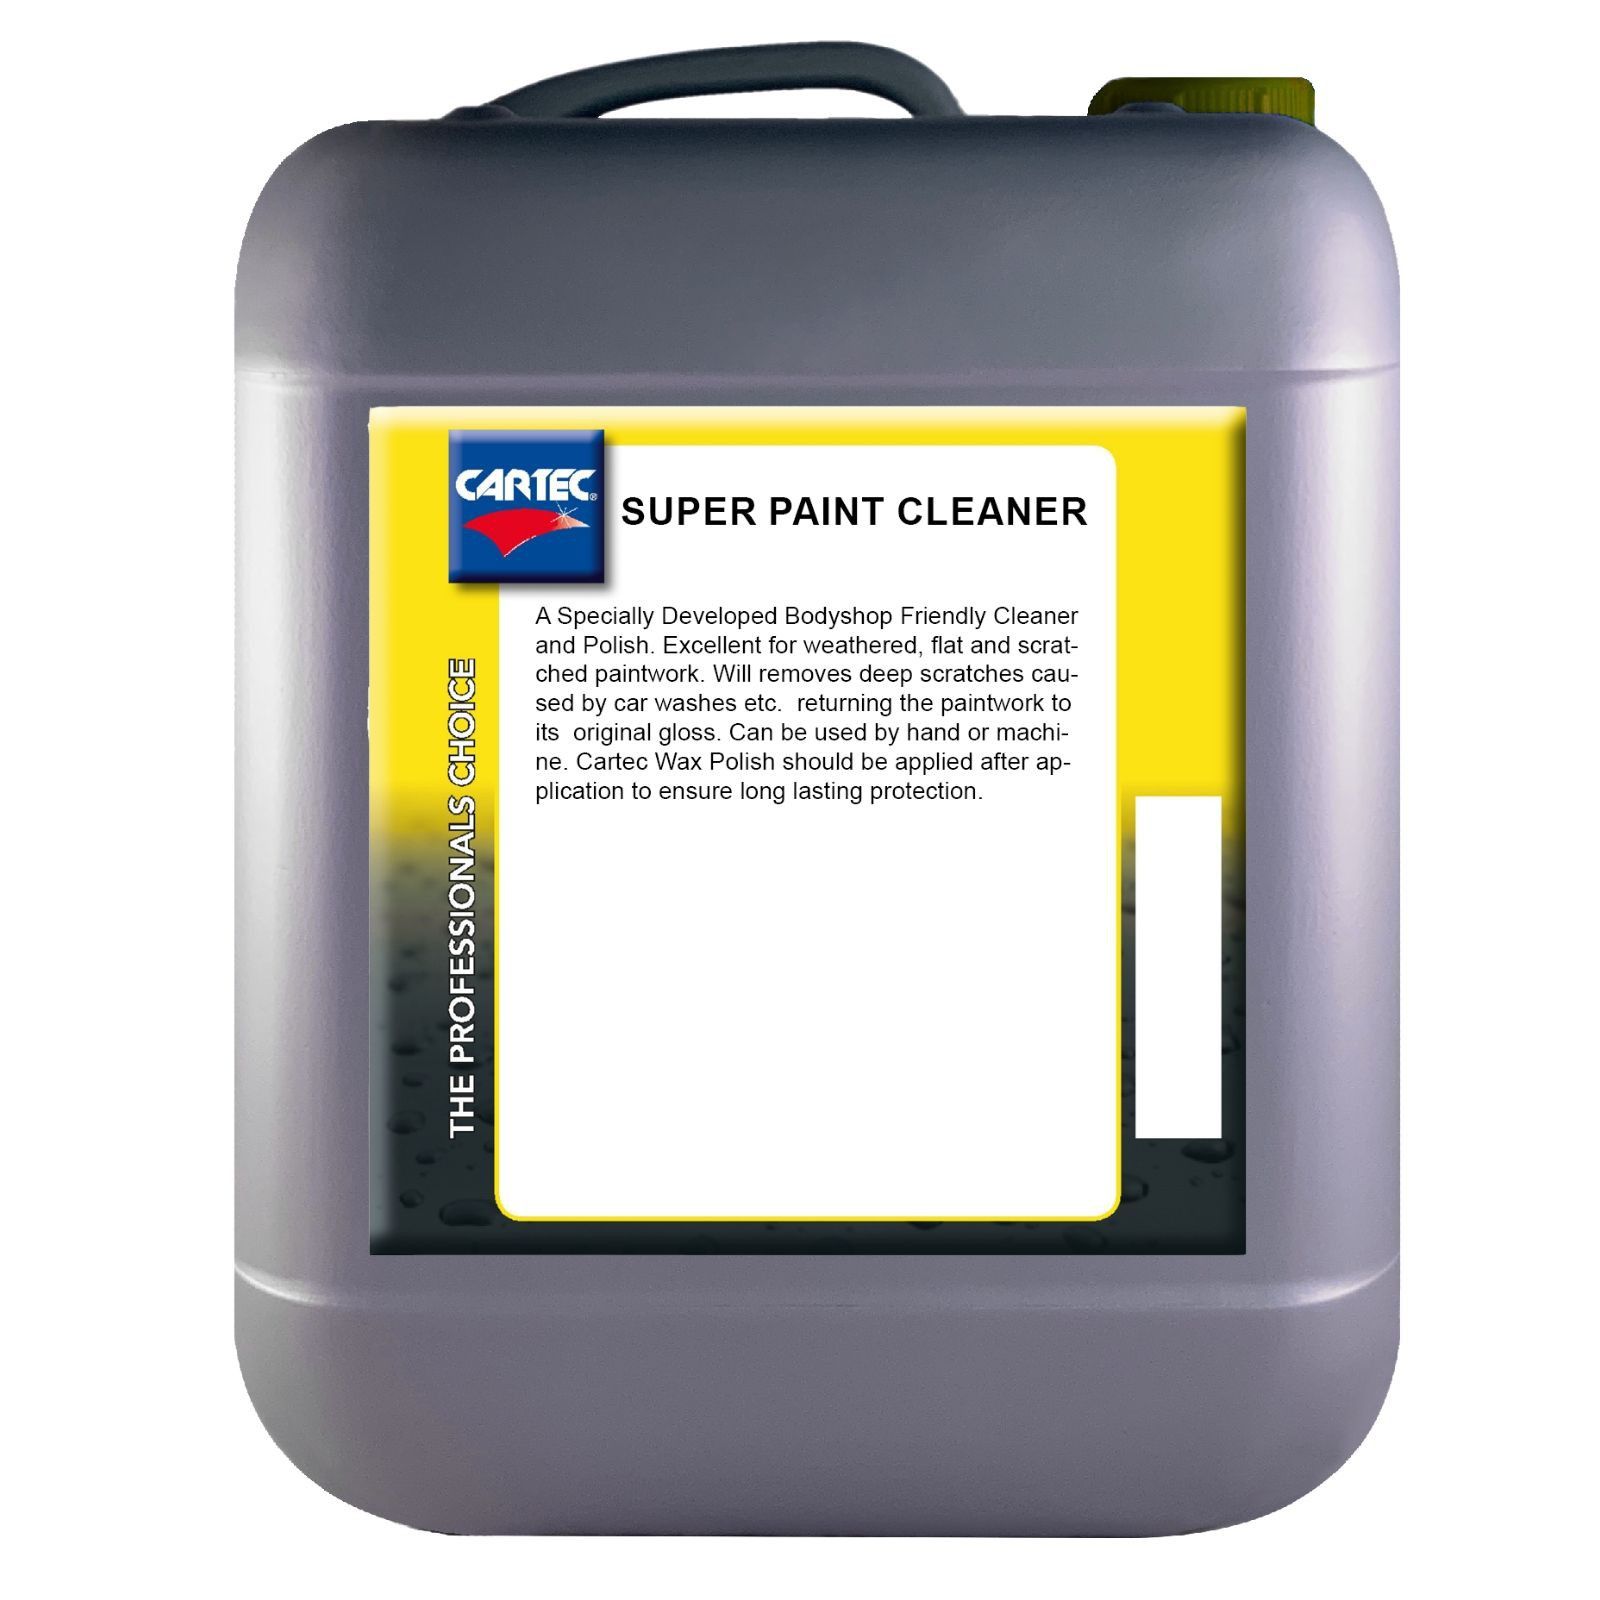 Super Paint Cleaner